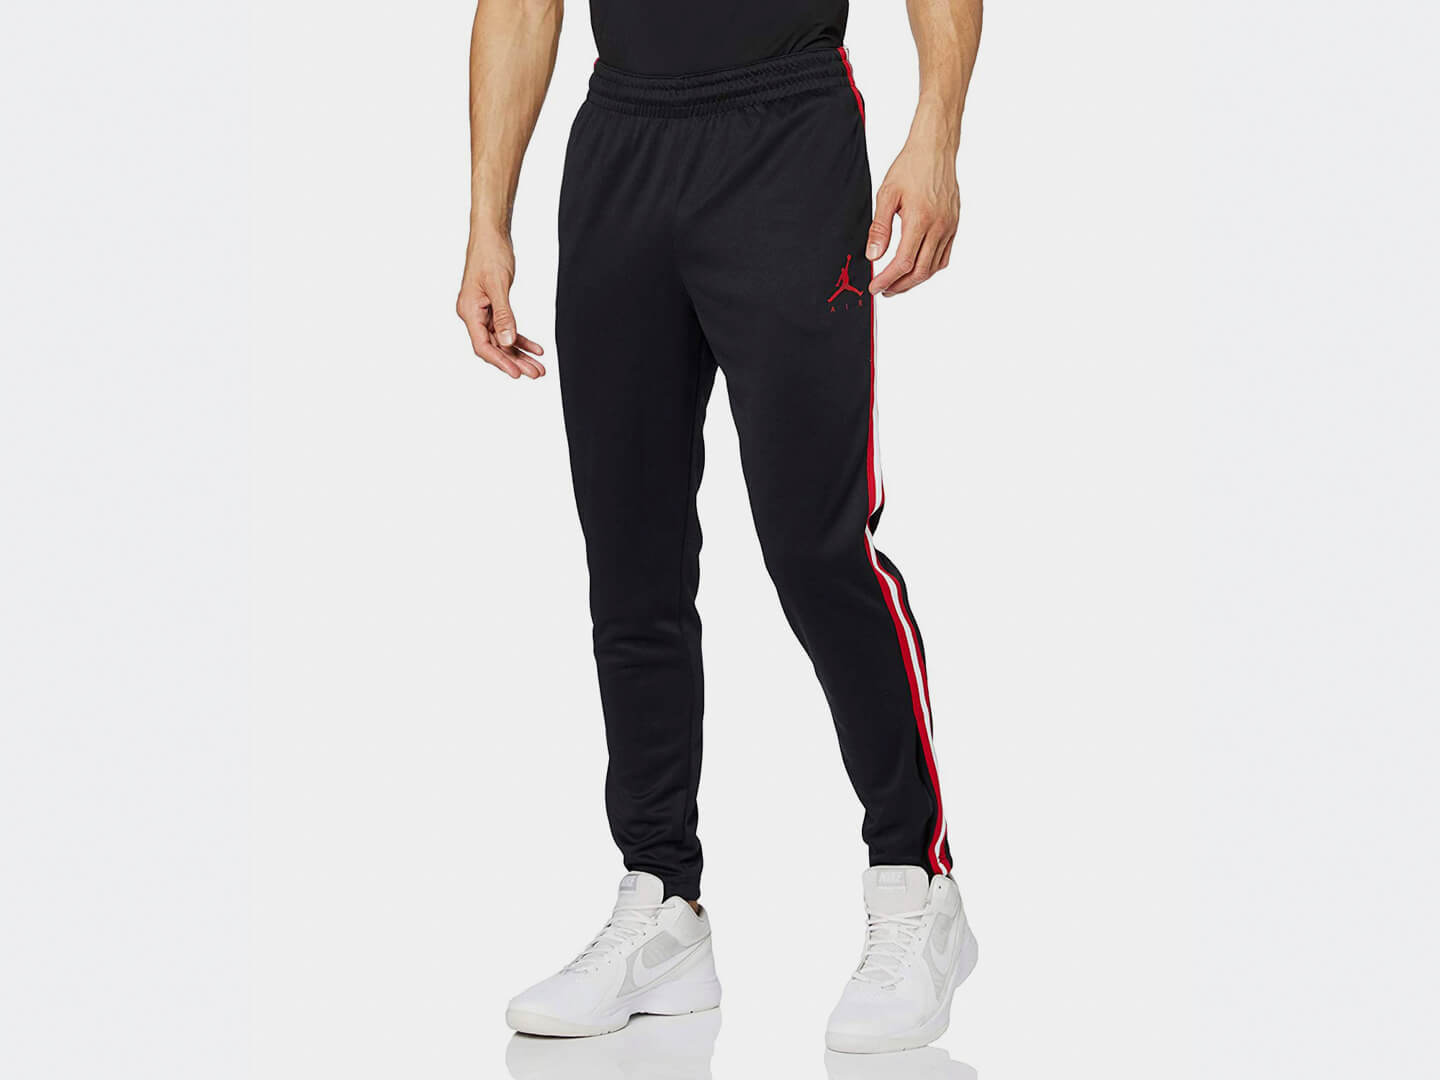 Мужские брюки Jordan Jumpman Flight Suit Pants / black